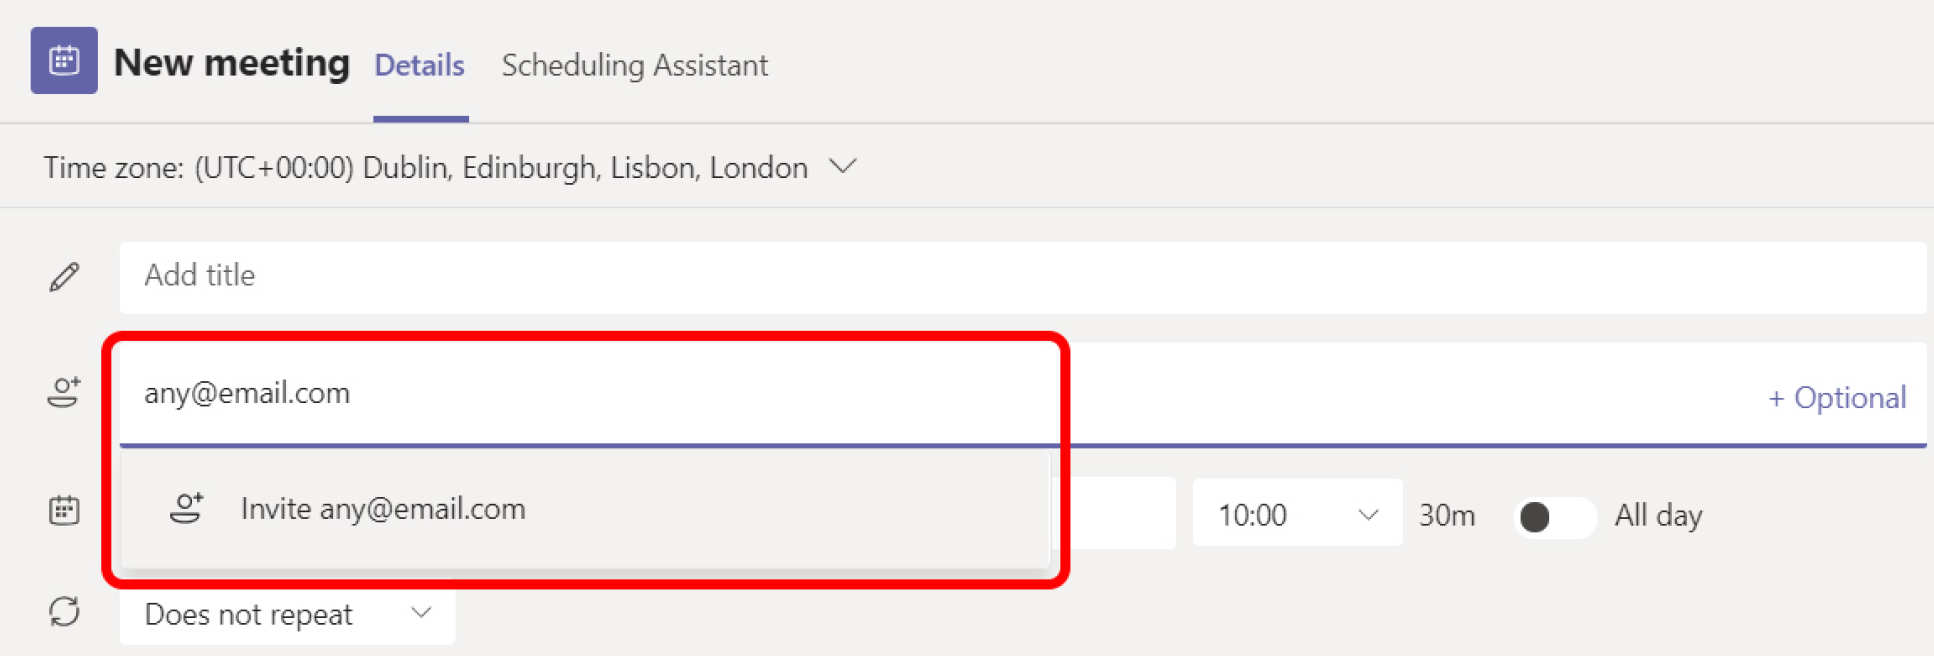 Screenshot from Teams showing where to add an external user's email address in the meeting invite